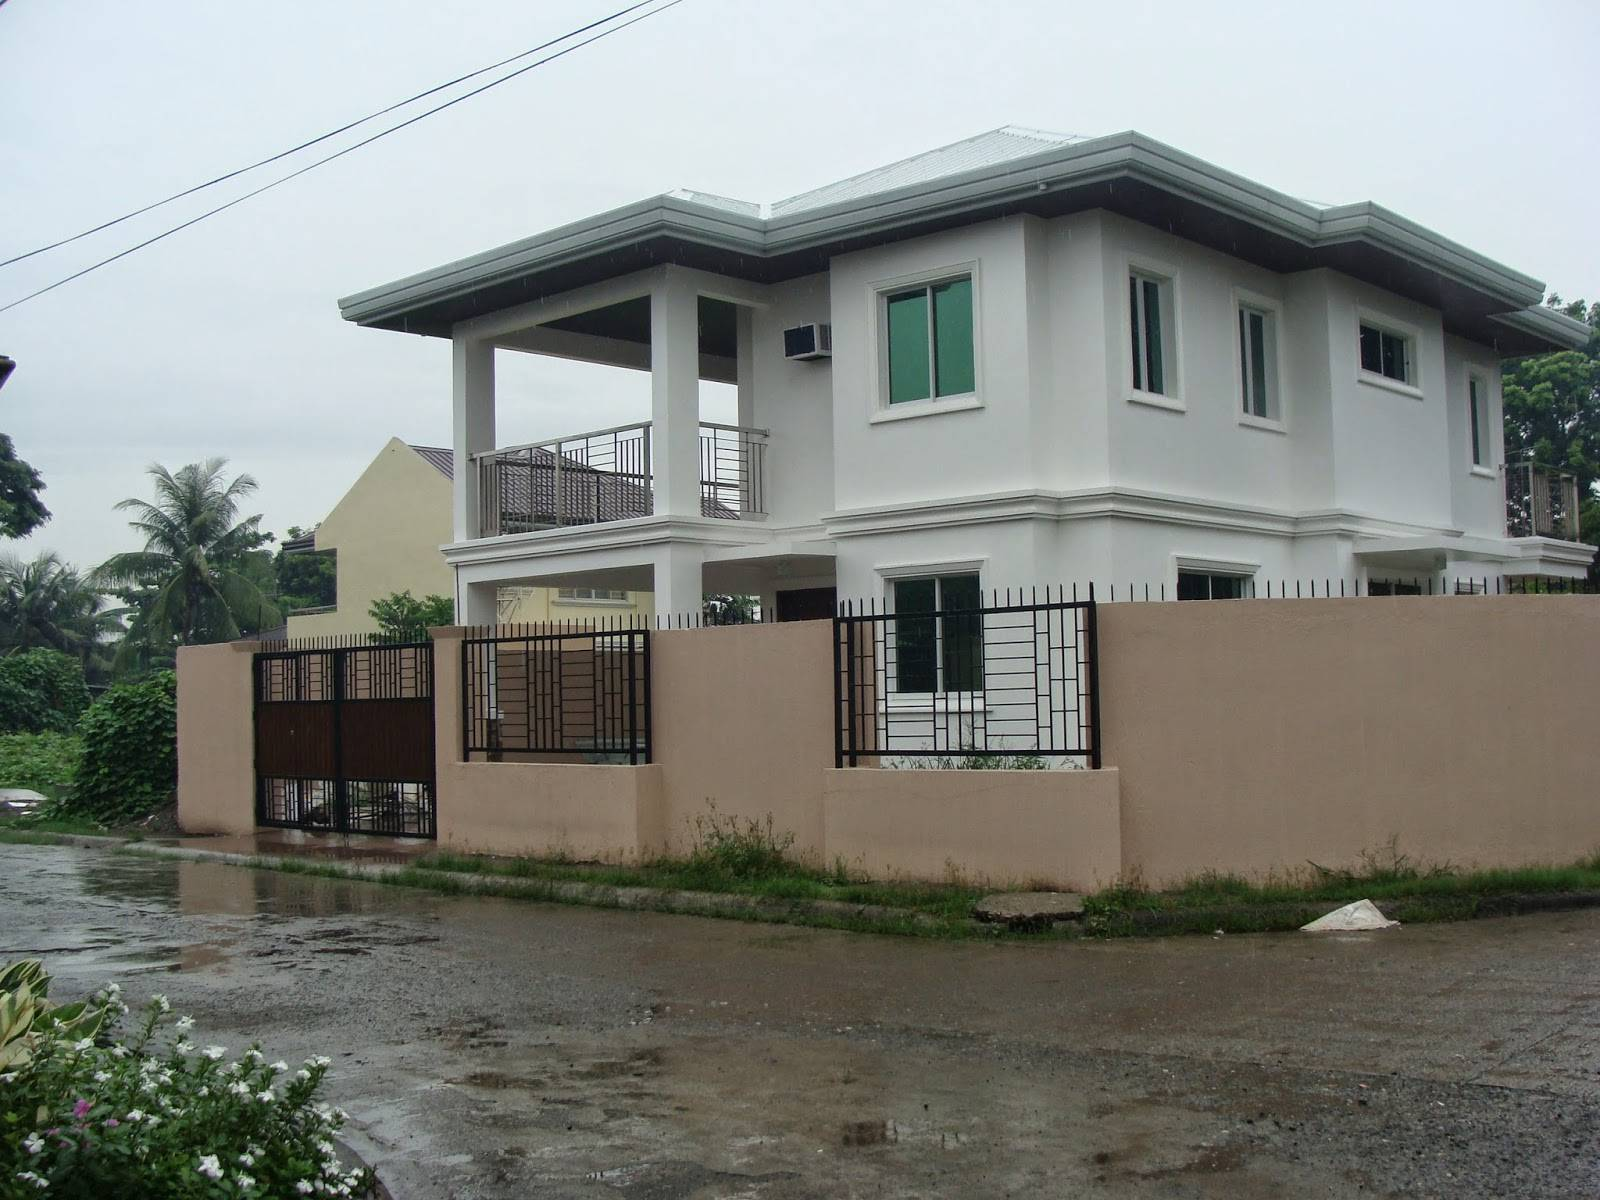 Small Two Story House Plans Philippines Iloilo Simple Design House Plans 37492